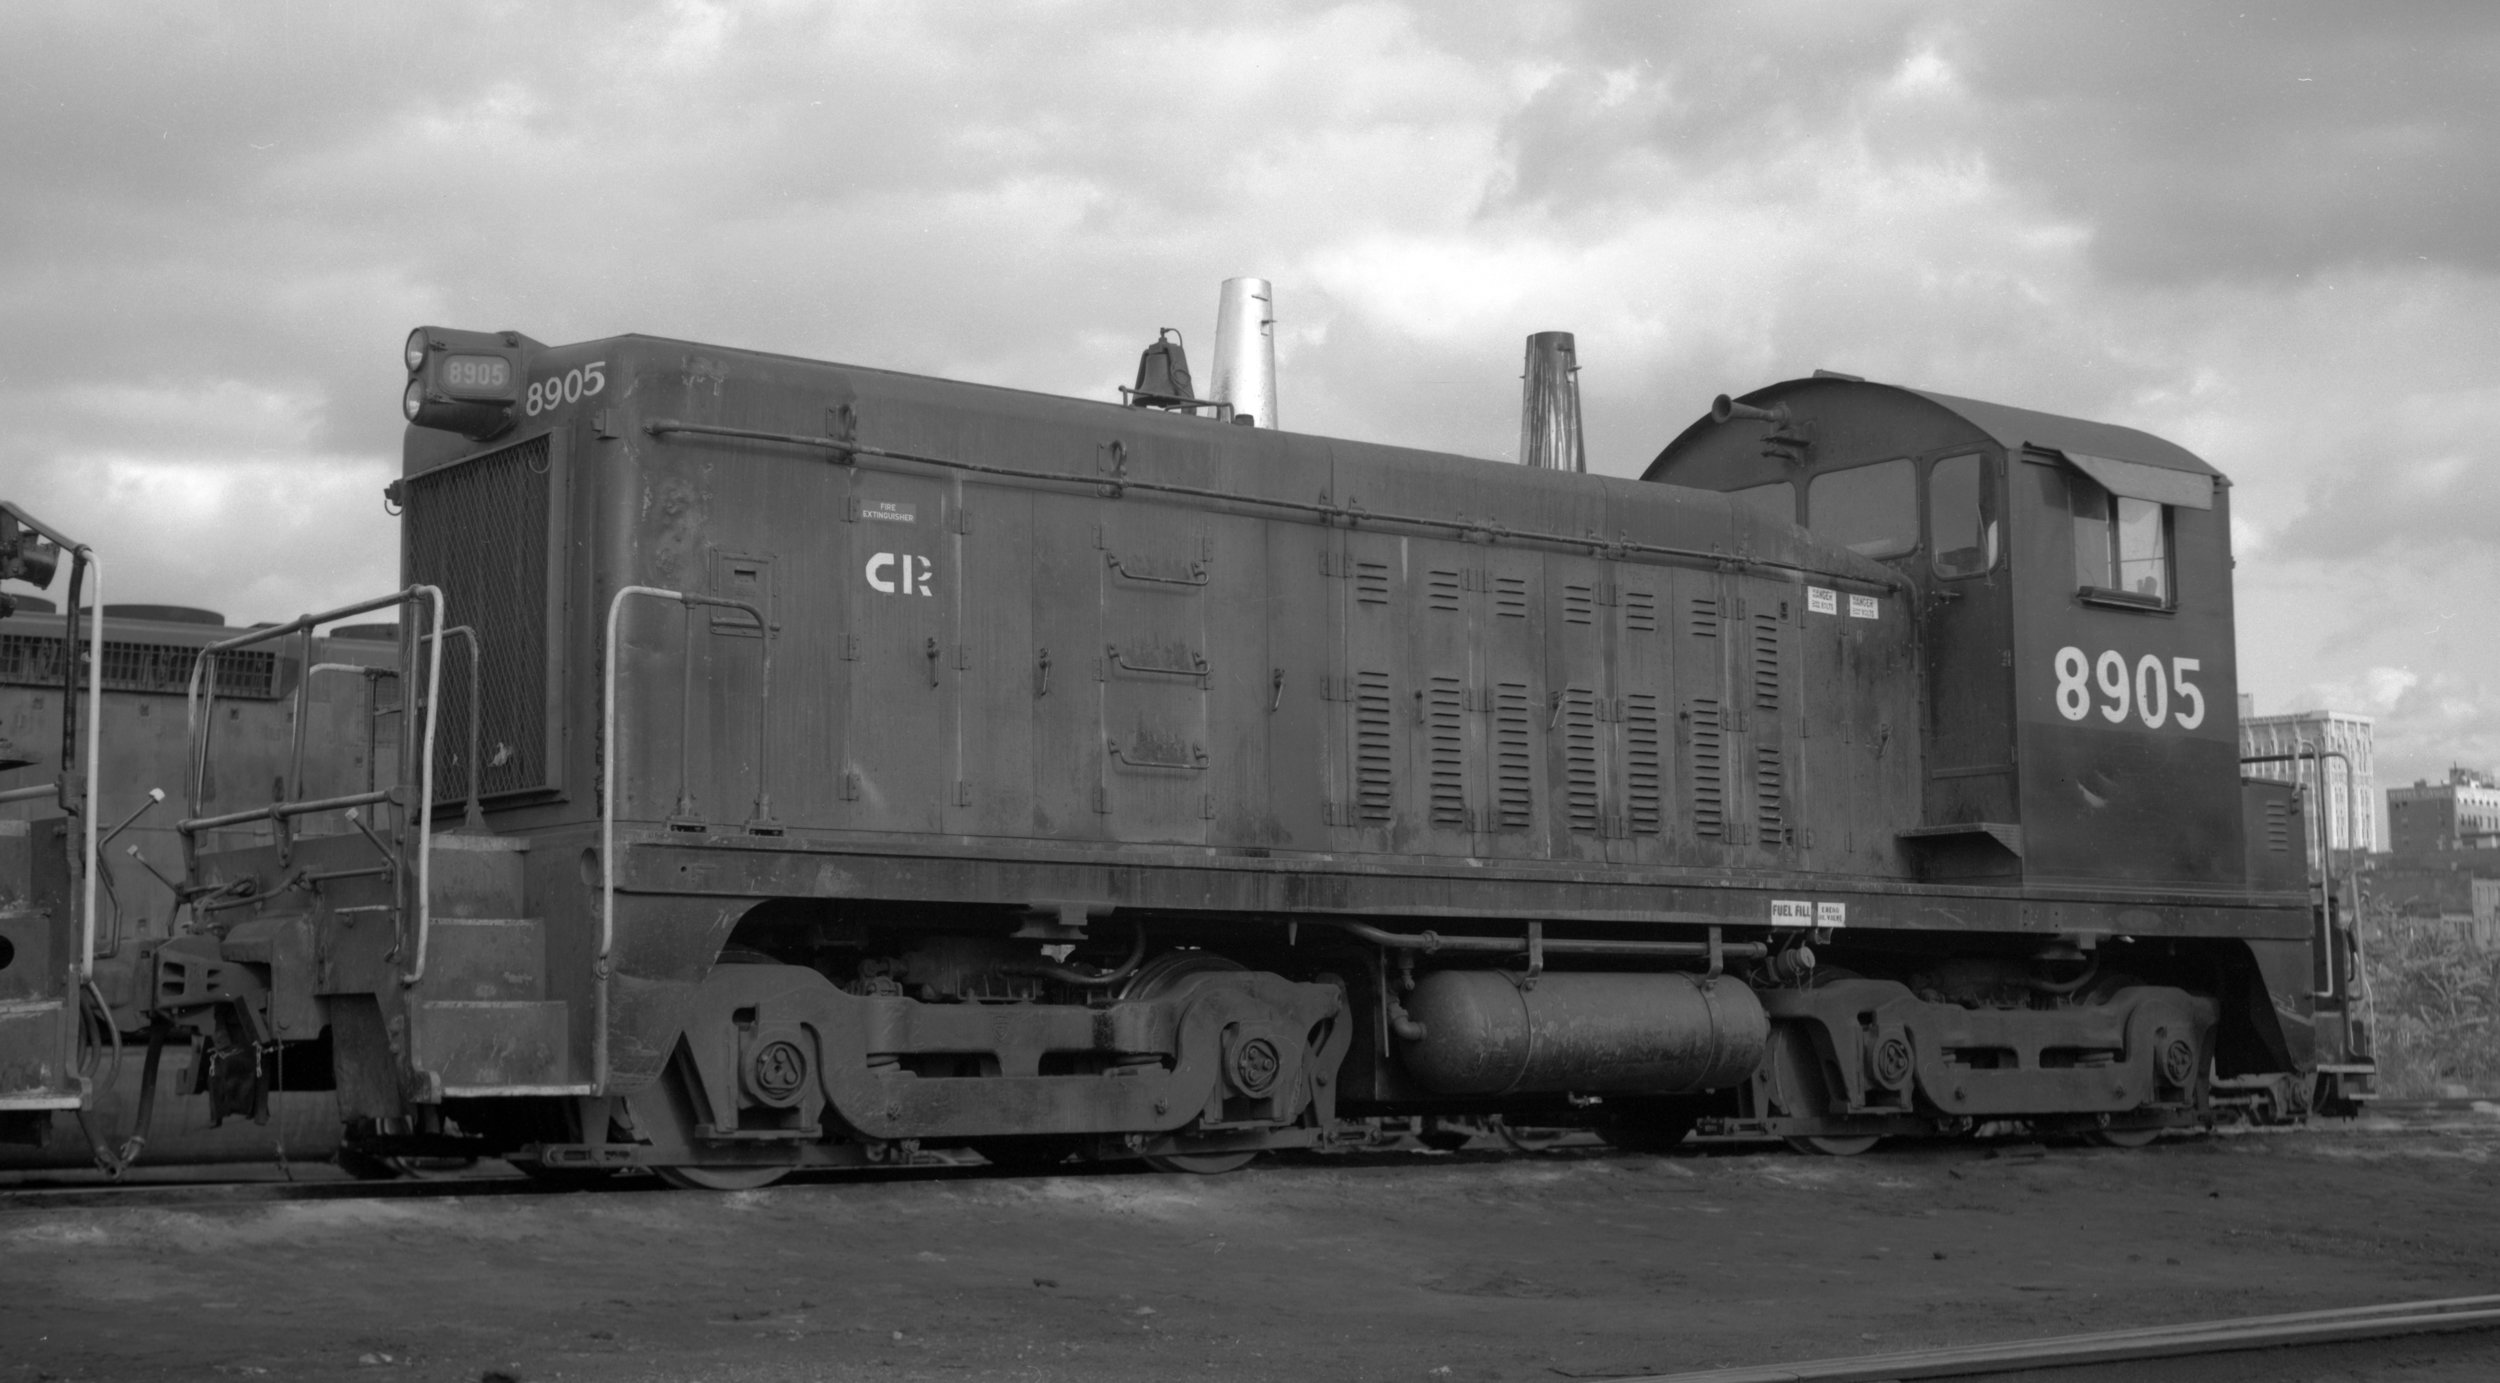 The patch over the P&E logo on the cab is evident in this October 15, 1978 photo of Conrail #8905 in Scranton, PA. (J. W. Hulsman photo, Railroad Museum of Pennsylvania collection)